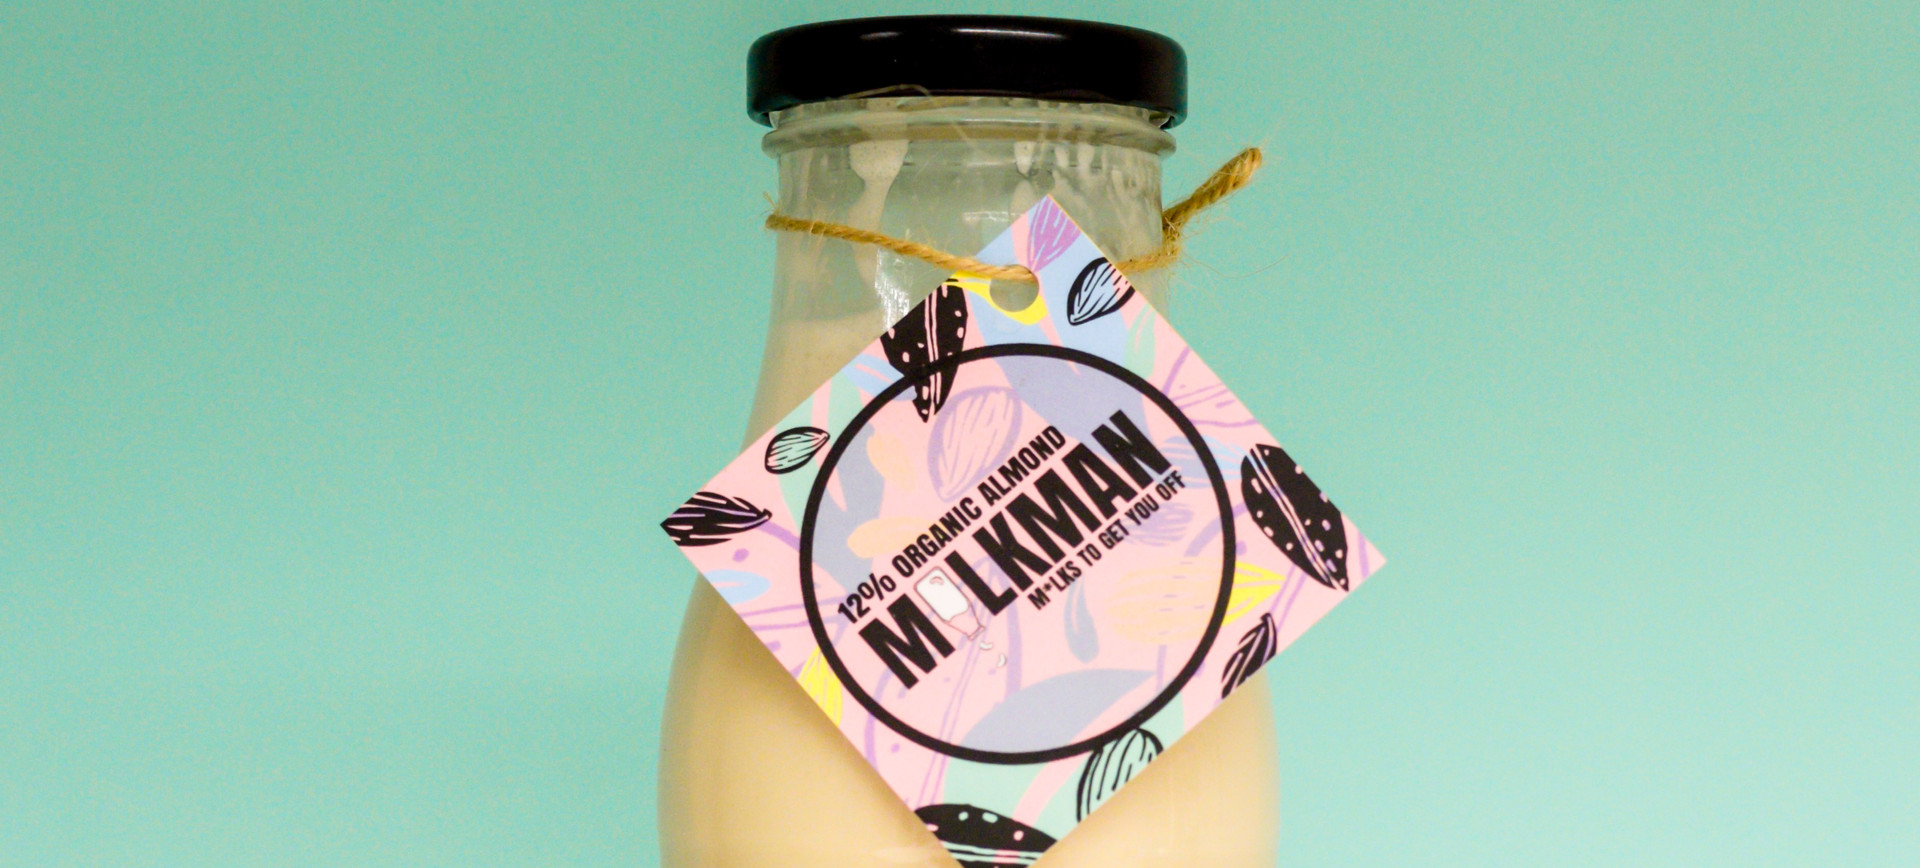 Illustrated labels for the M*lkman Uk, maker of hand-made nut milks